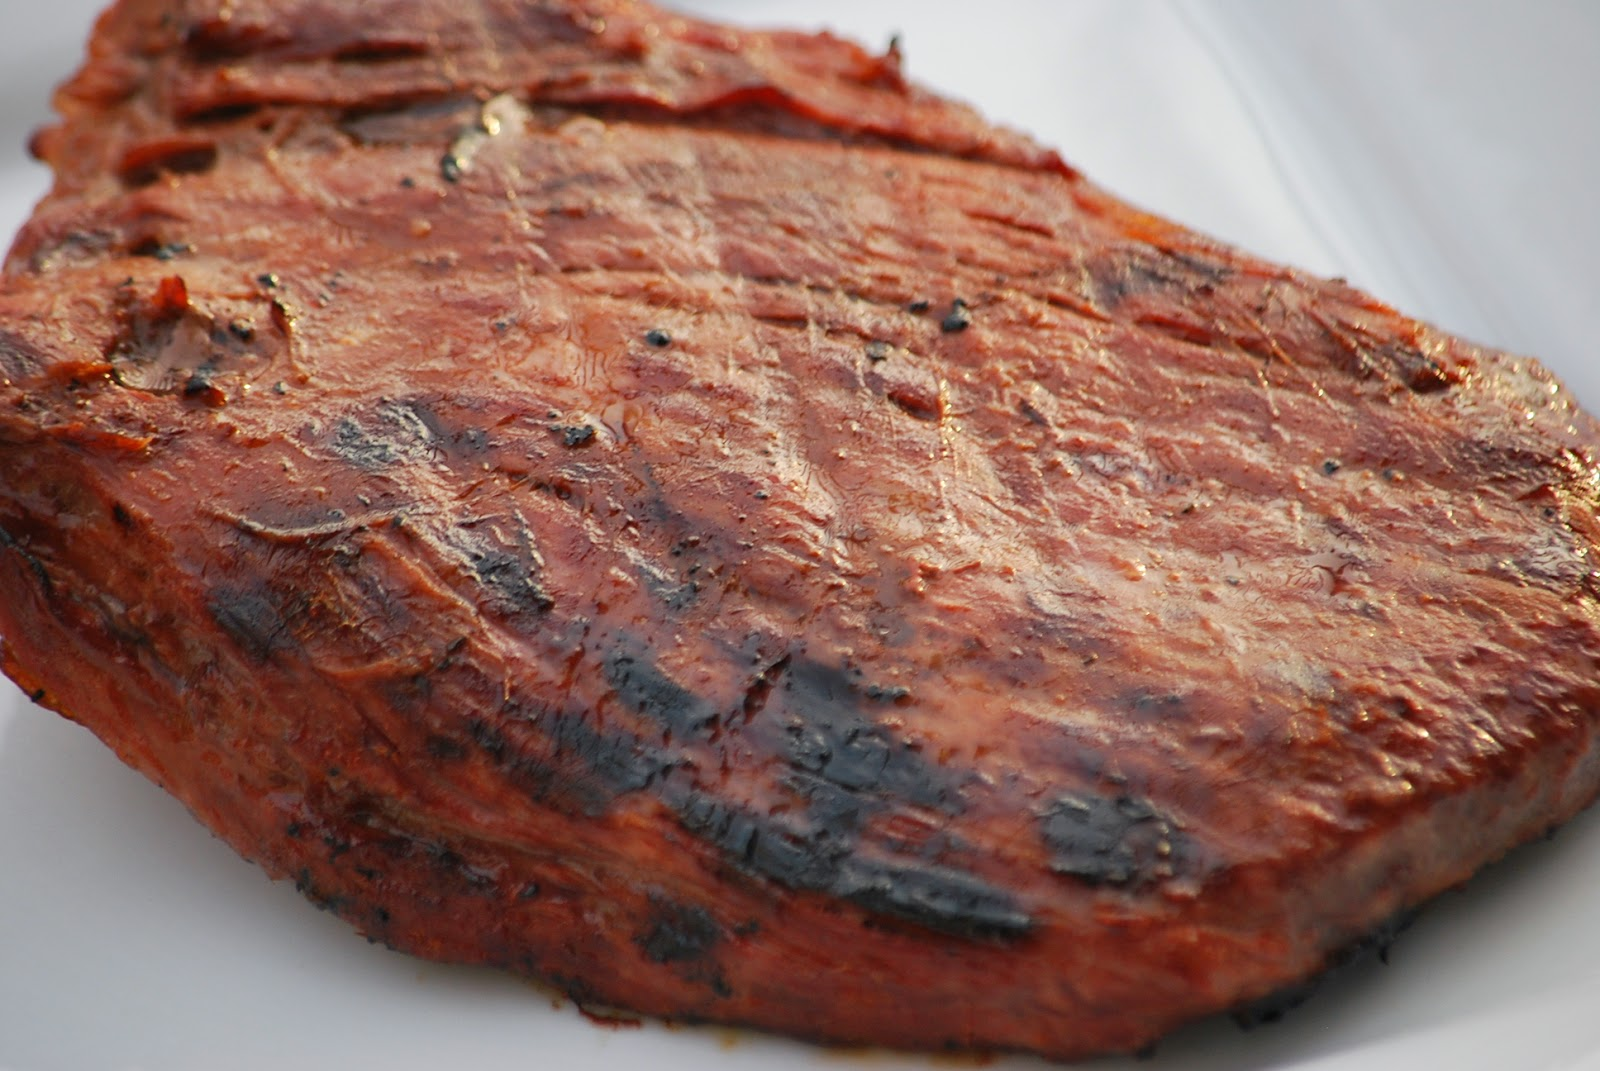 460x274 460 x 274 jpeg 28 kb quick and easy pan fried flank steak ...